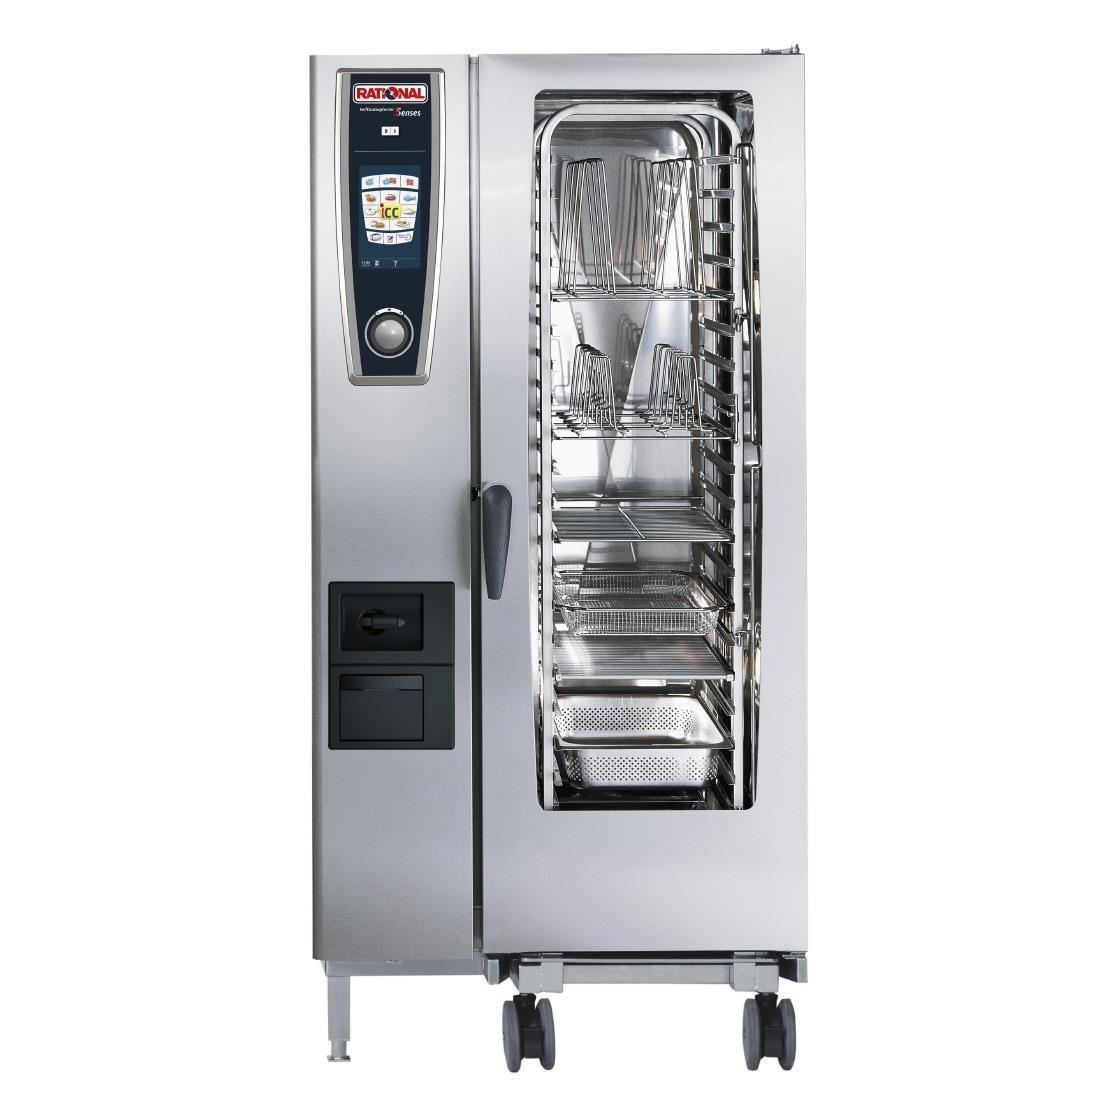 GJ076 - Rational Self Cooking Centre White Efficiency 201 Electric (Direct)